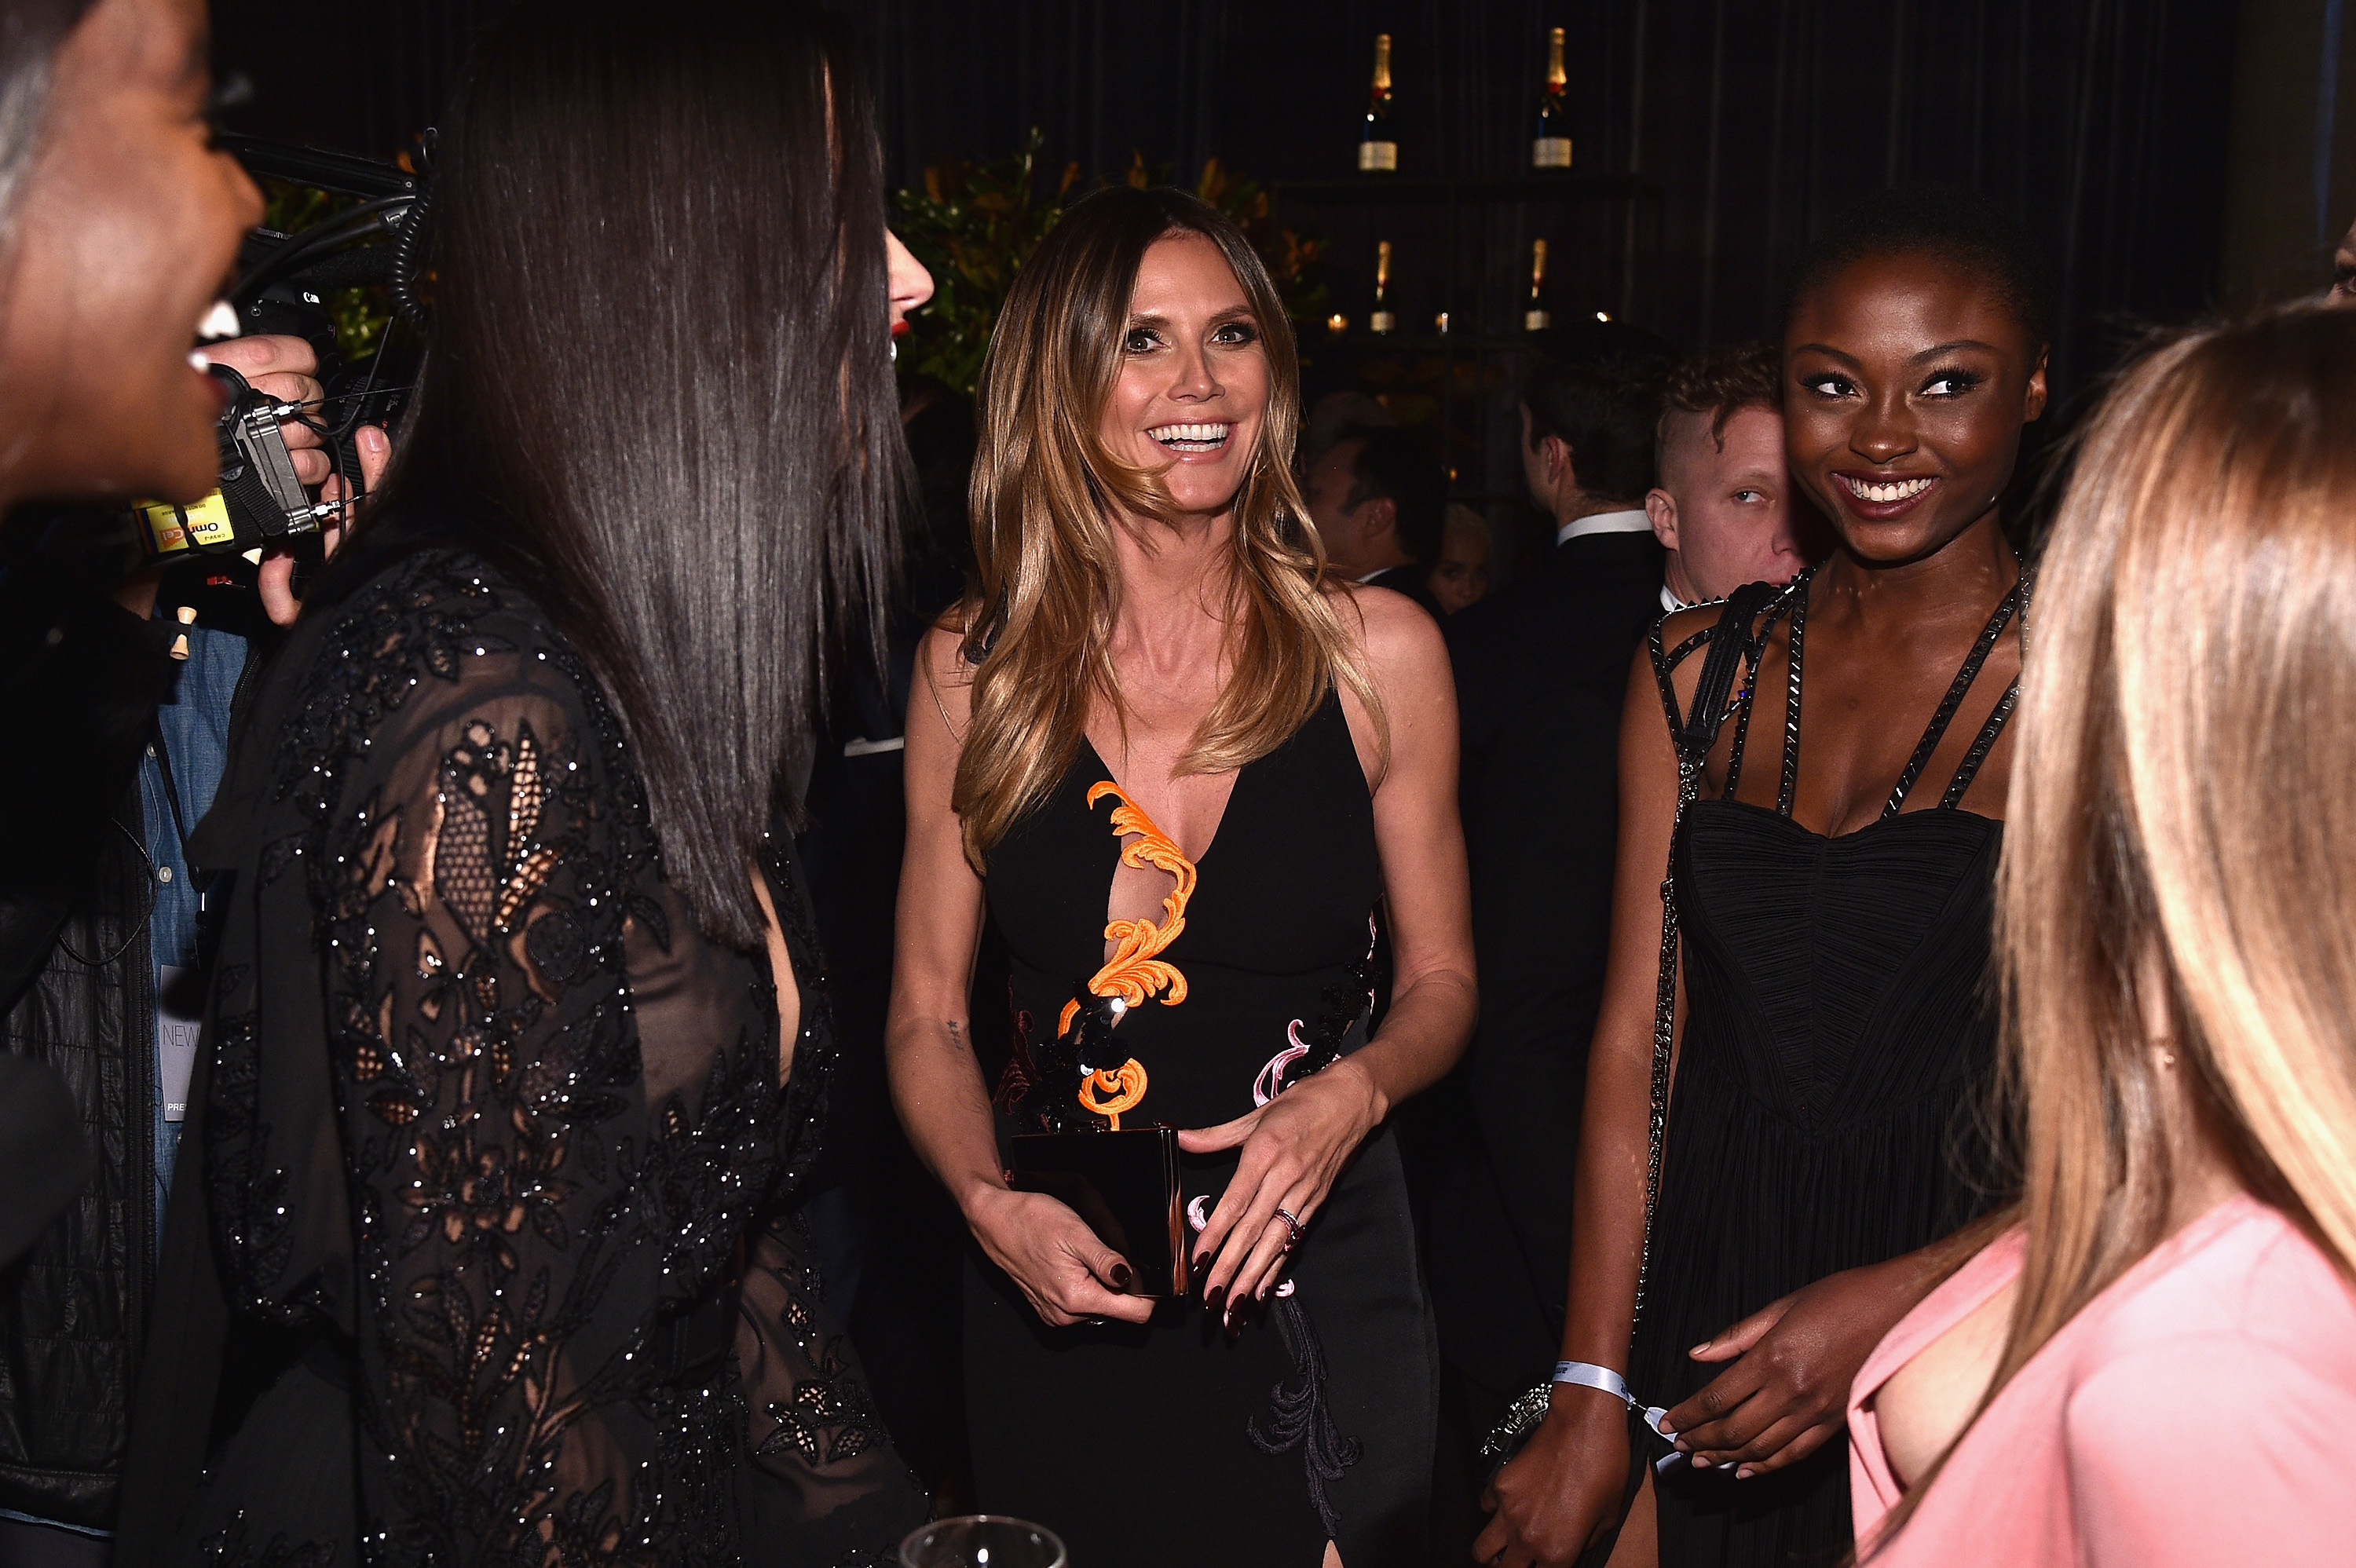 NEW YORK, NY - FEBRUARY 08:  Model Heidi Klum attends as Moet & Chandon Toasts to the amfAR New York Gala At Cipriani Wall Street at Cipriani Wall Street on February 8, 2017 in New York City.  (Photo by Bryan Bedder/Getty Images for Moet & Chandon)